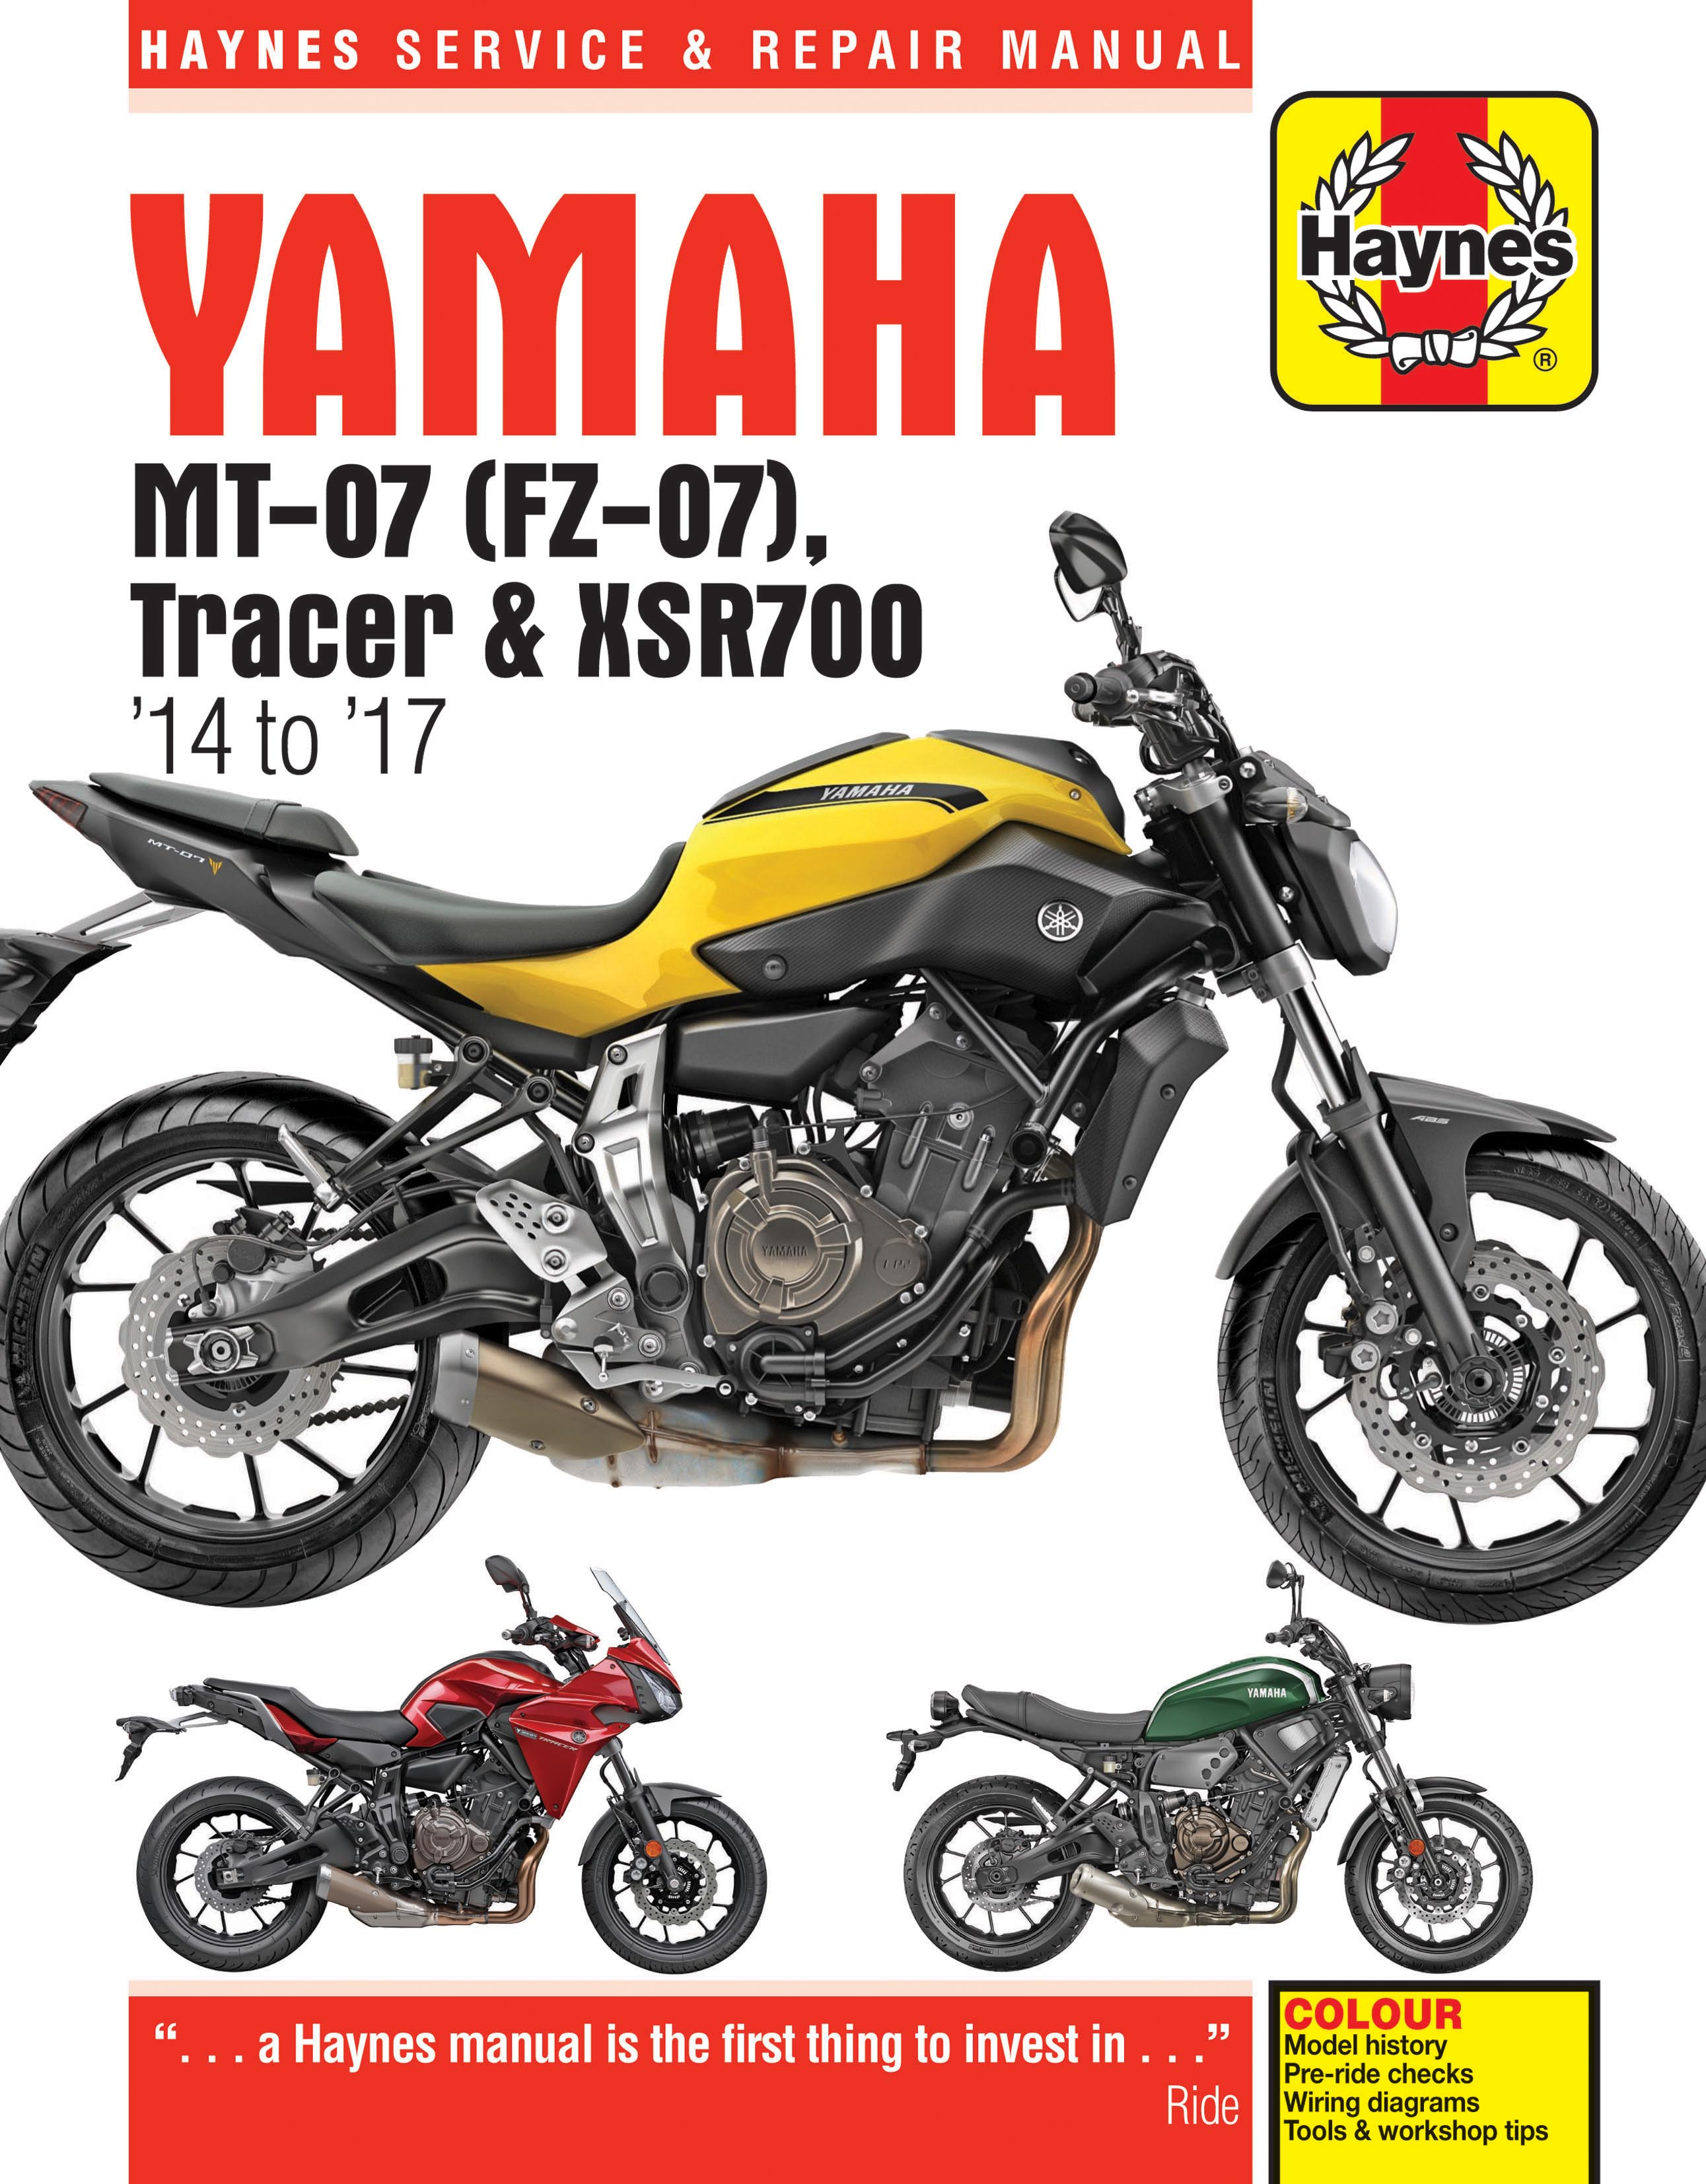 Haynes Launches Manual For The Yamaha Mt 07 Mt07 Uk Owners Club M7 Wiring